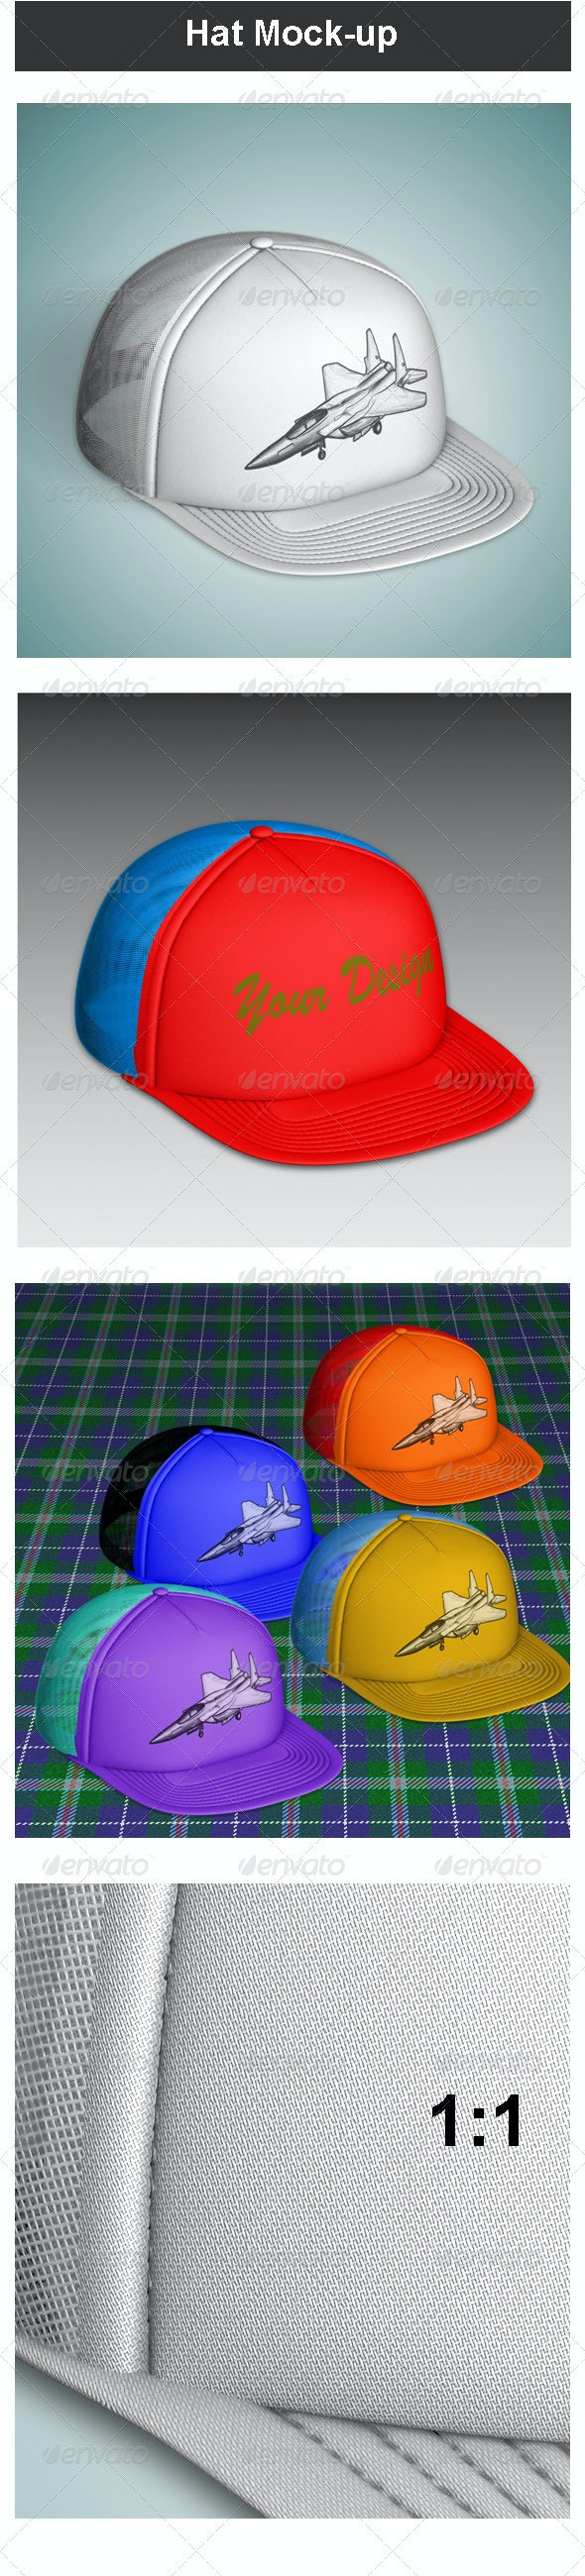 Hat Mock-up - Miscellaneous Apparel